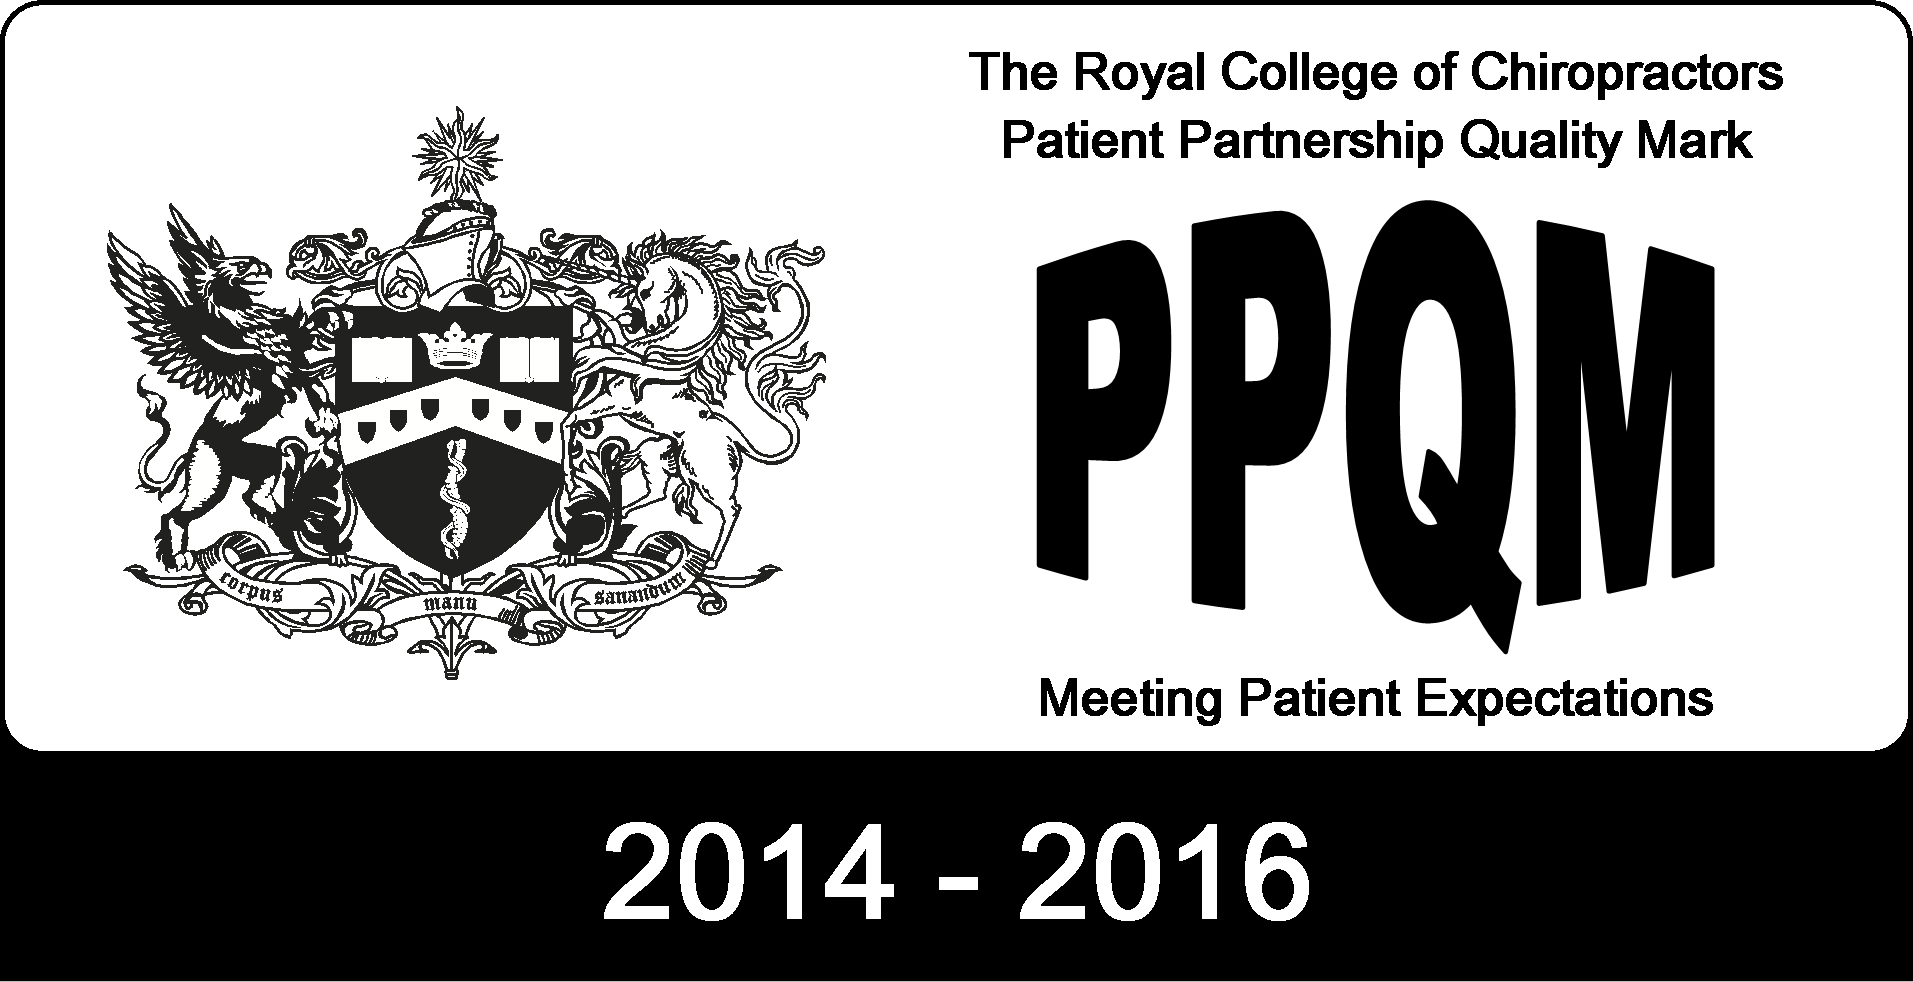 Chiro Health Clinics awarded Royal College of Chiropractors Patient Partnership Quality Mark (PPQM)